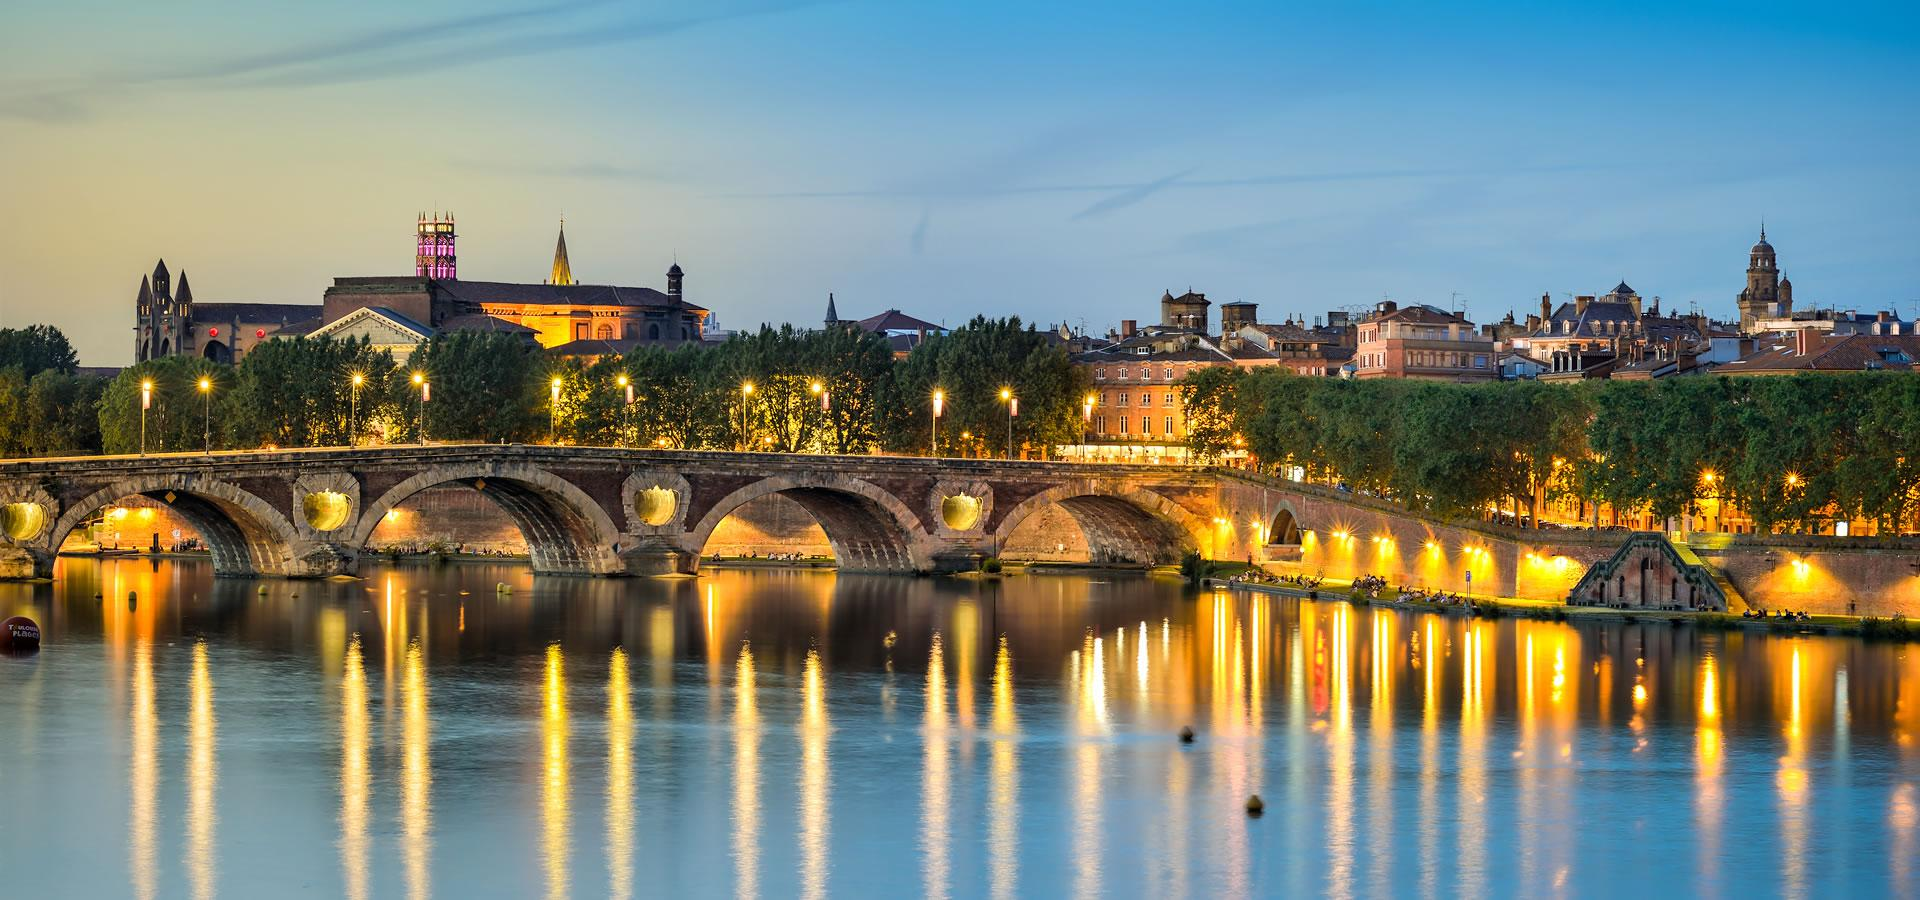 Les bords de Garonne à Toulouse